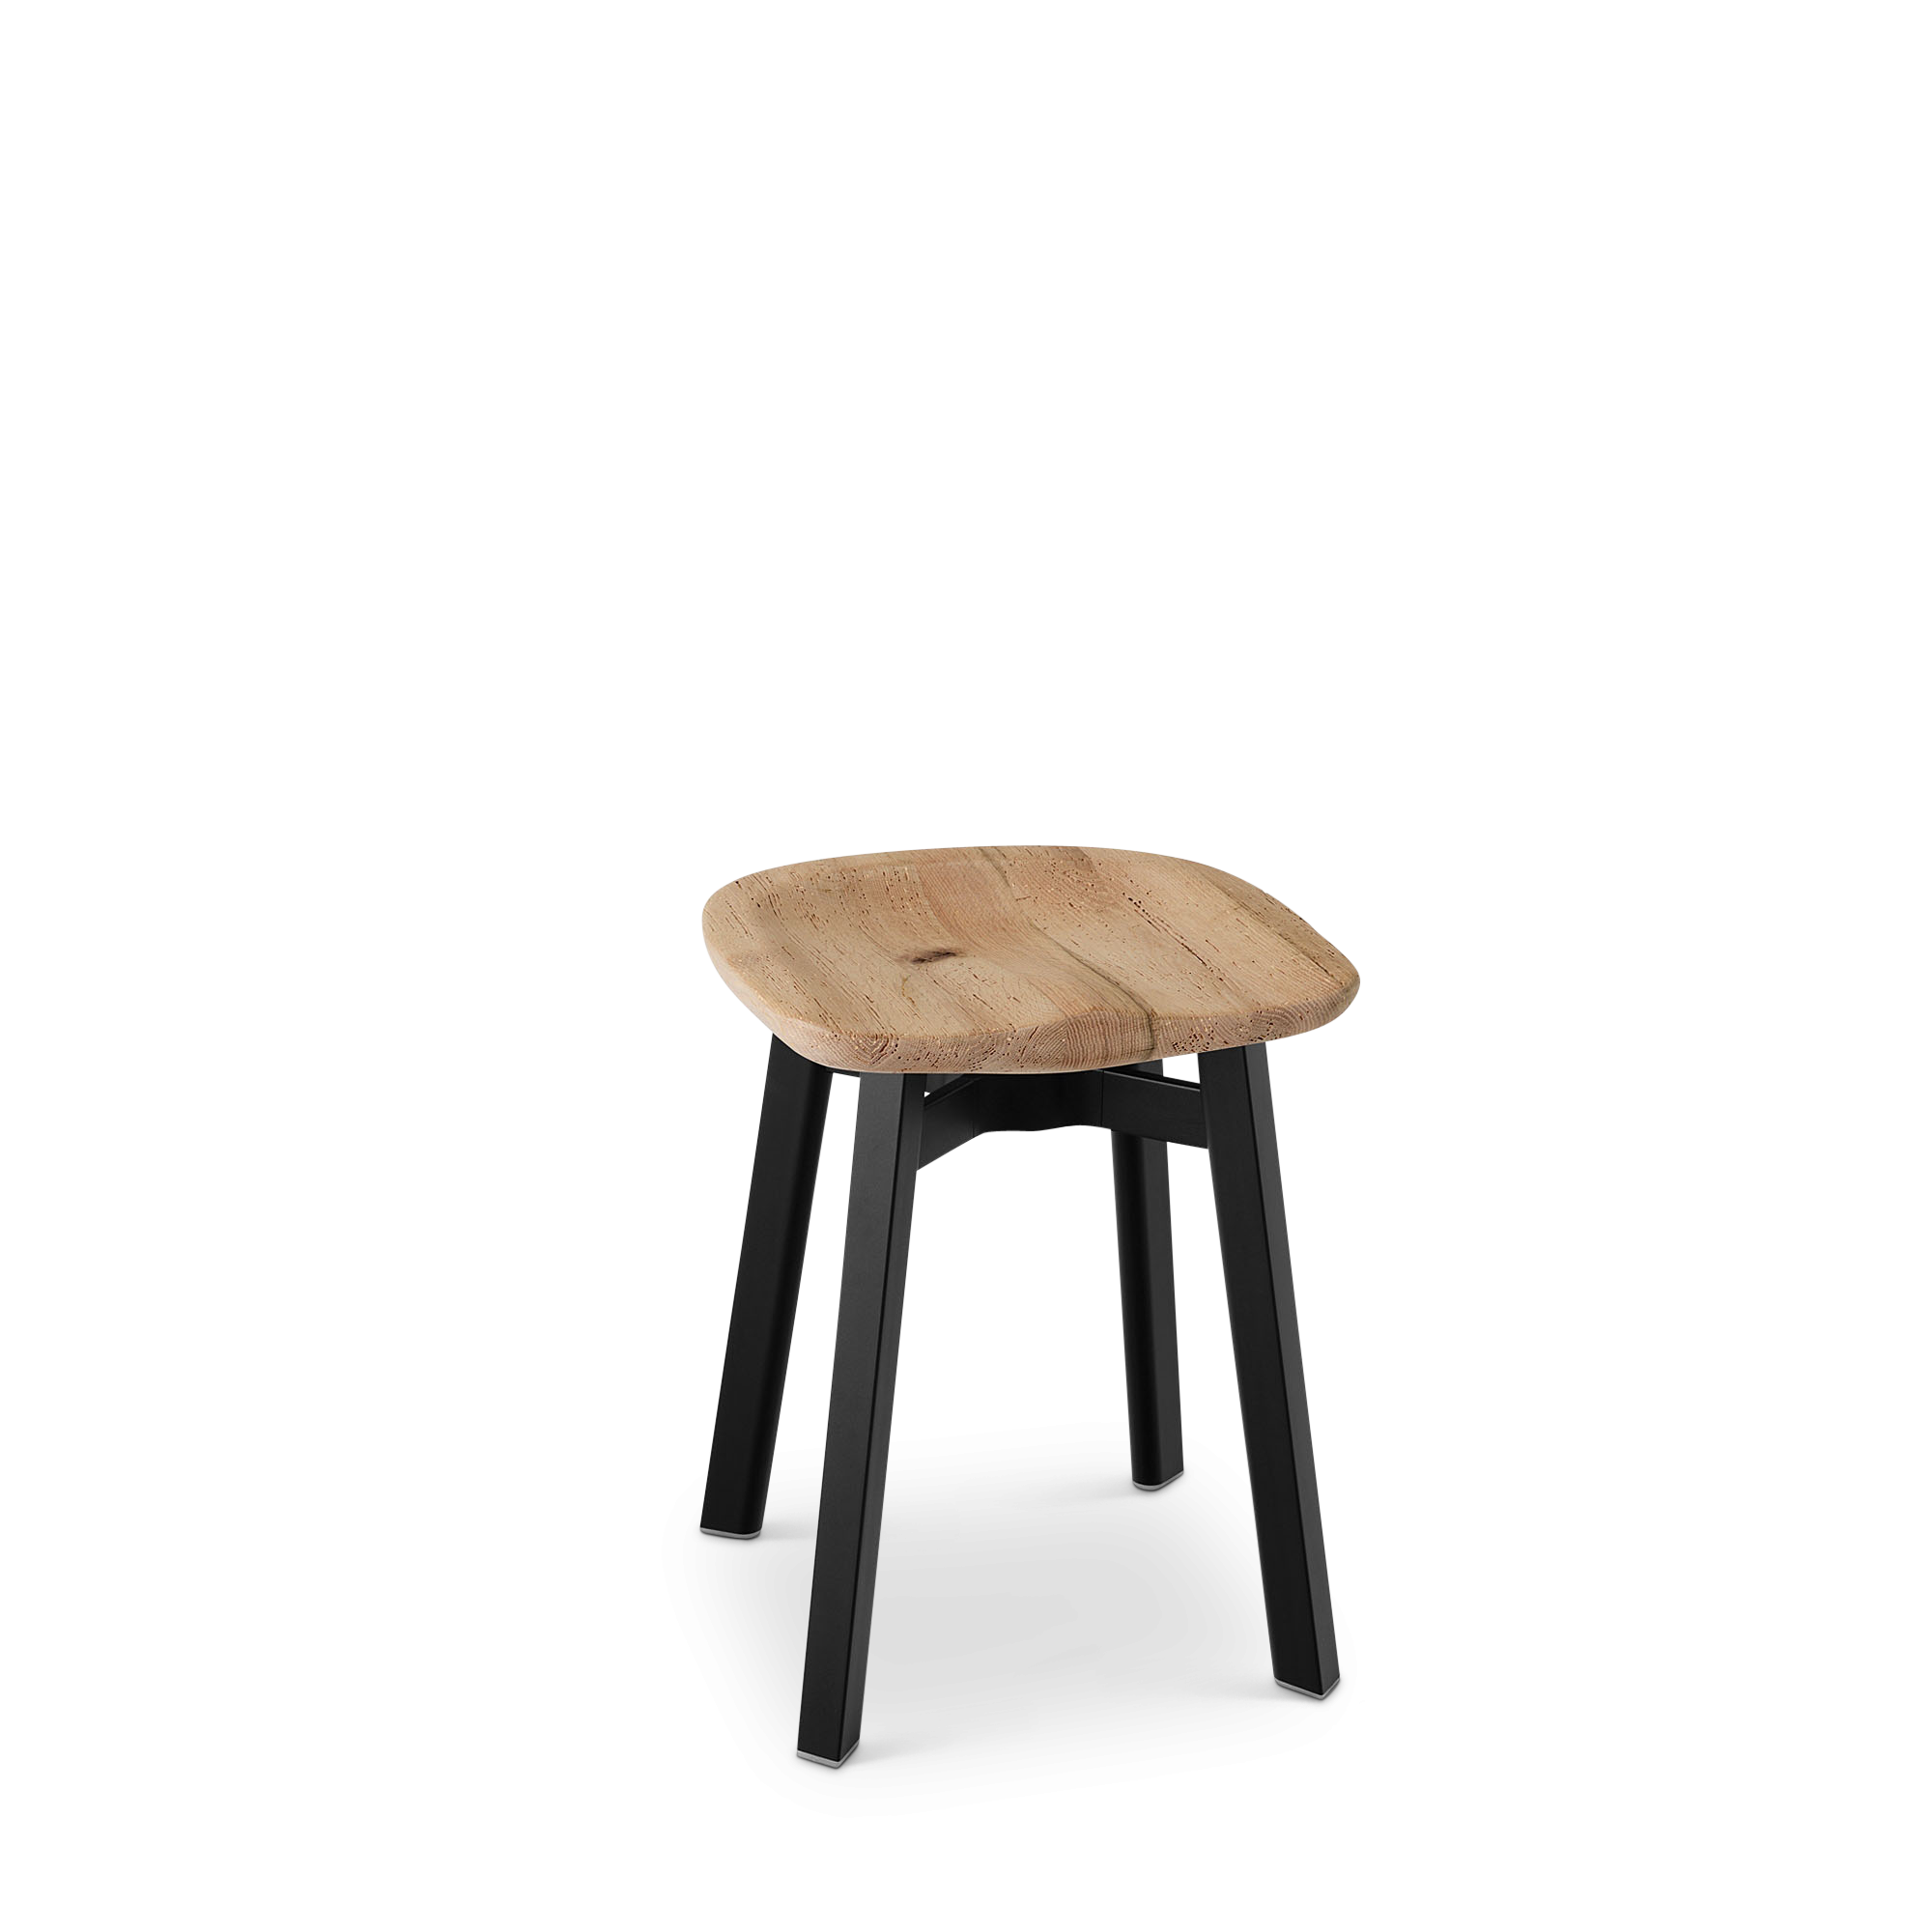 su-small-stool-reclaimed-oak-seat